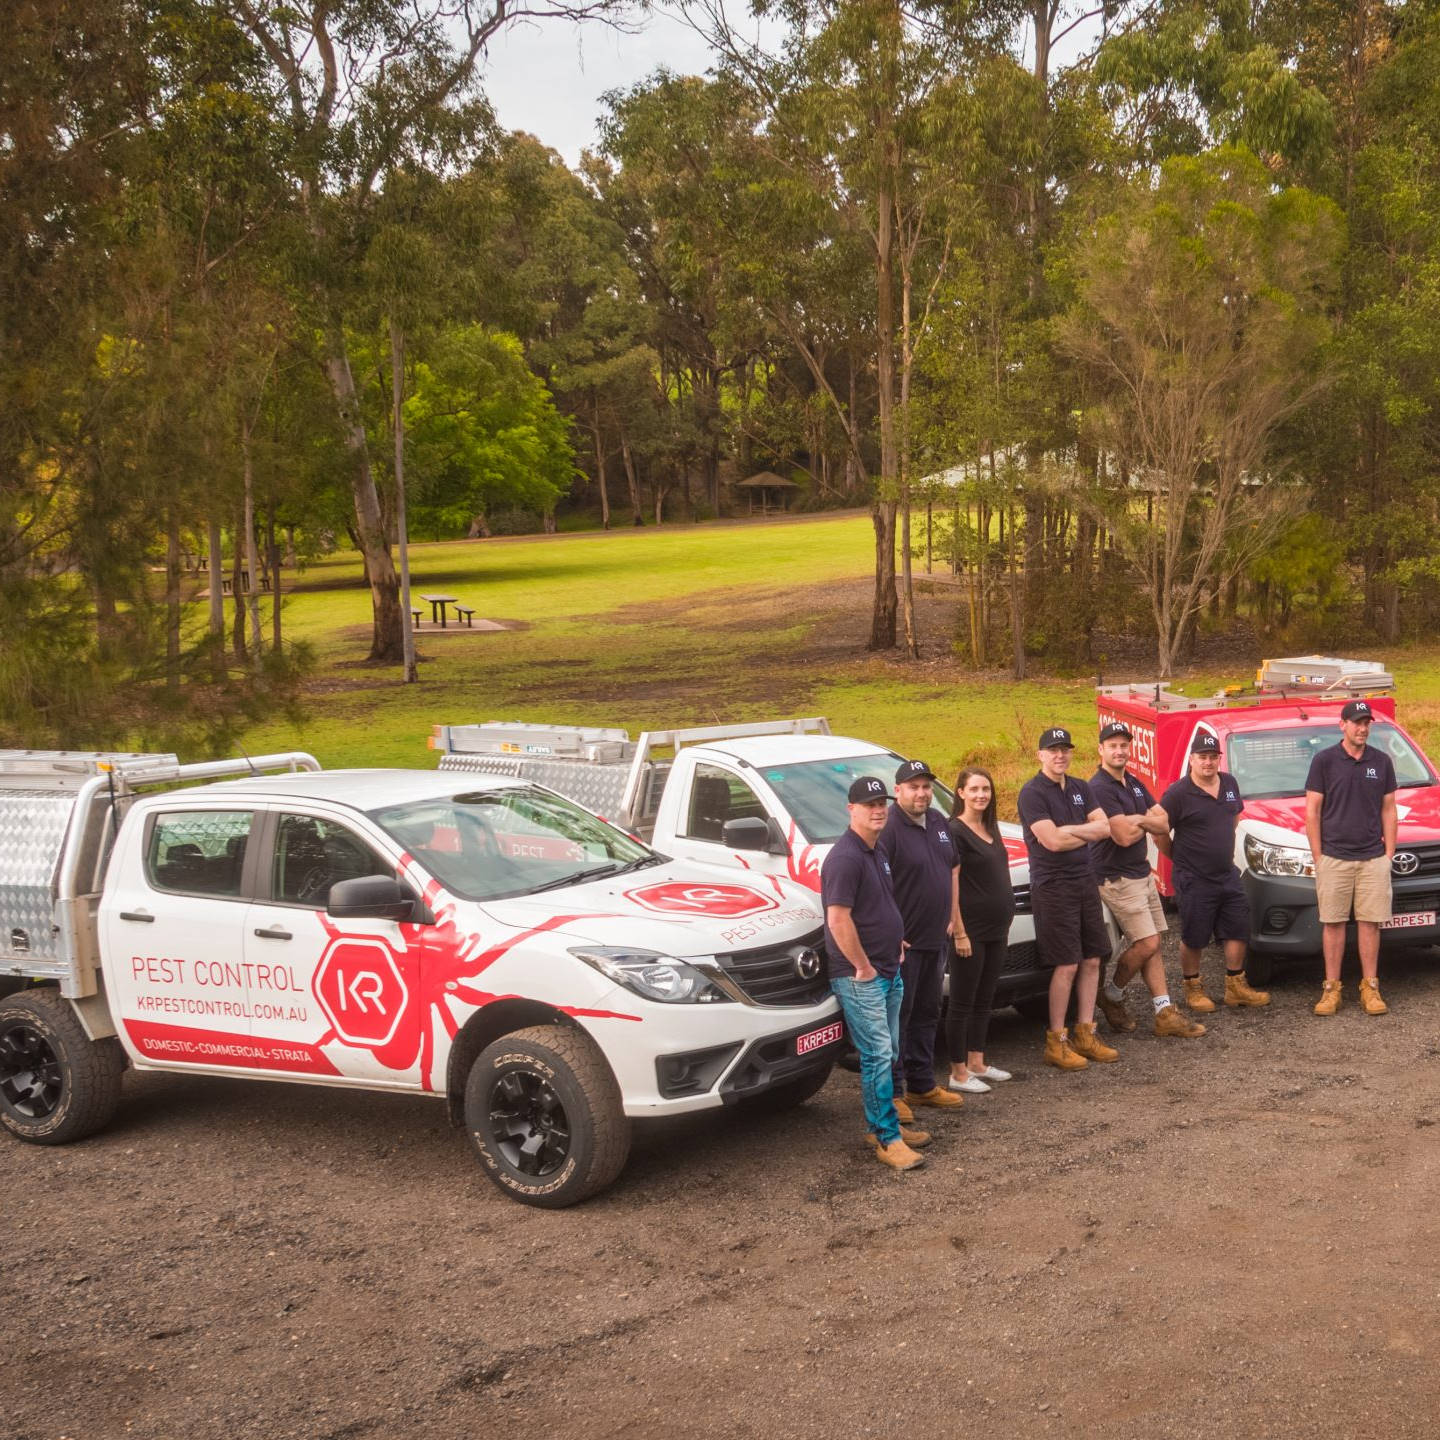 Box Hill Pest Control & Termite Inspections Specialists KR Pest Control